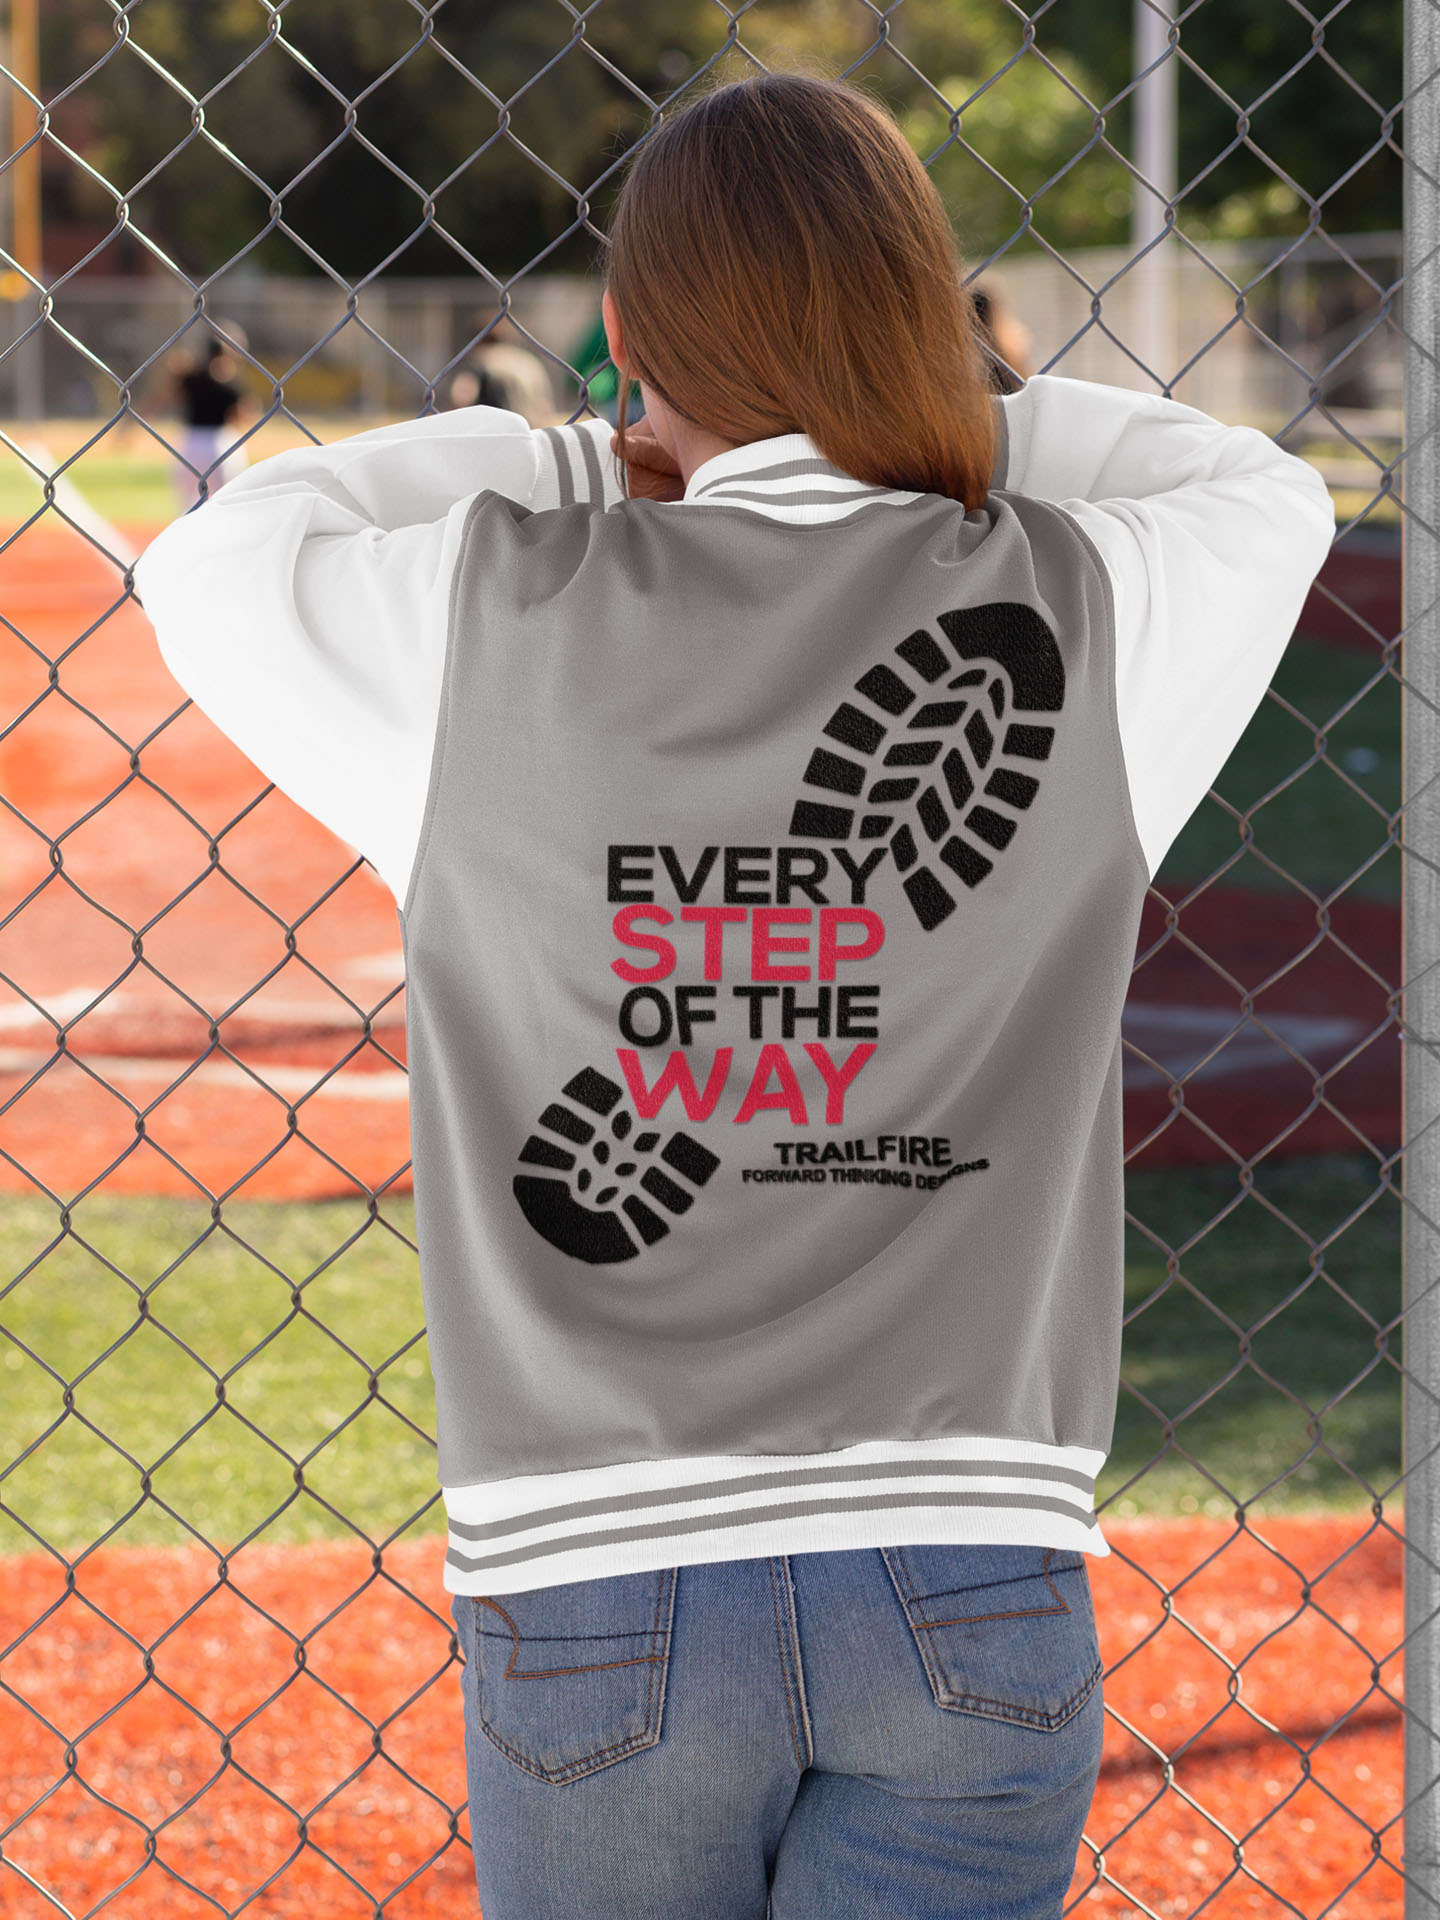 Spredshirt-Prints-Trailfire_0010_mockup-of-a-young-woman-with-a-varsity-jacket-watching-a-baseball-game-33208